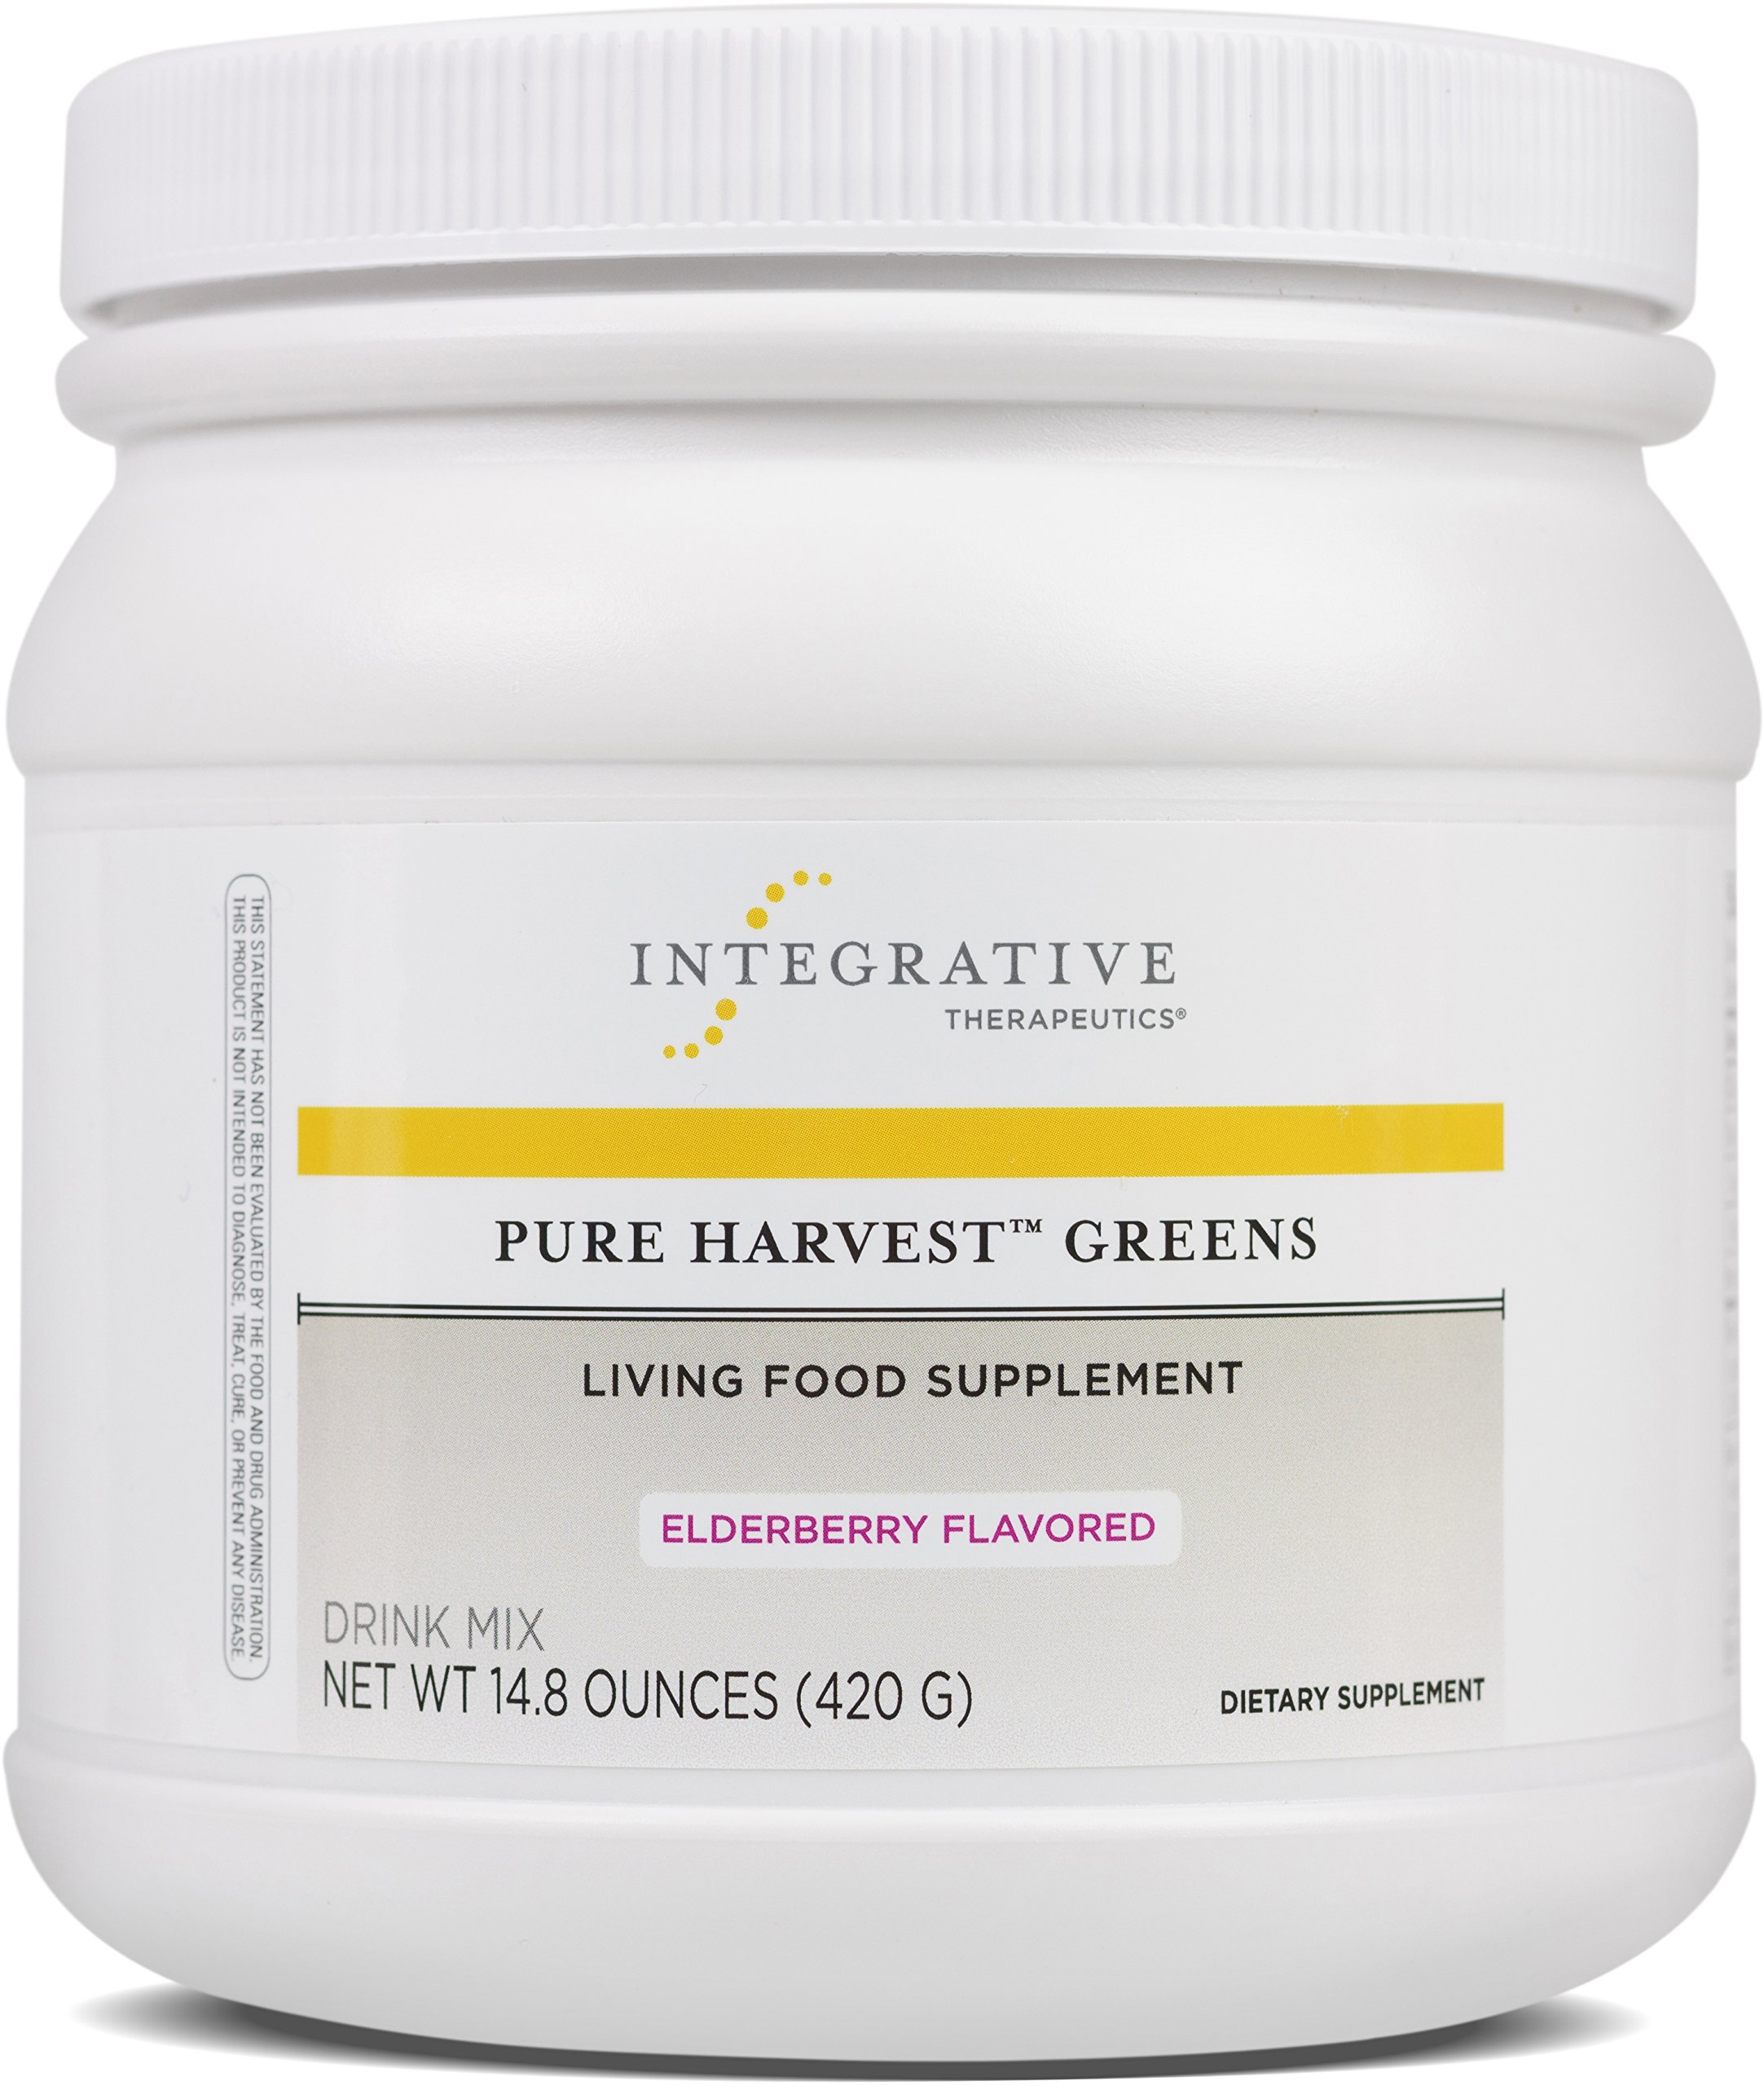 Integrative Therapeutics - Pure Harvest Greens Drink Mix - Living Food Supplement - Supports Enhanced Energy & Digestions, Helps Boost Immune System - Elderberry Flavor - 14.8 oz